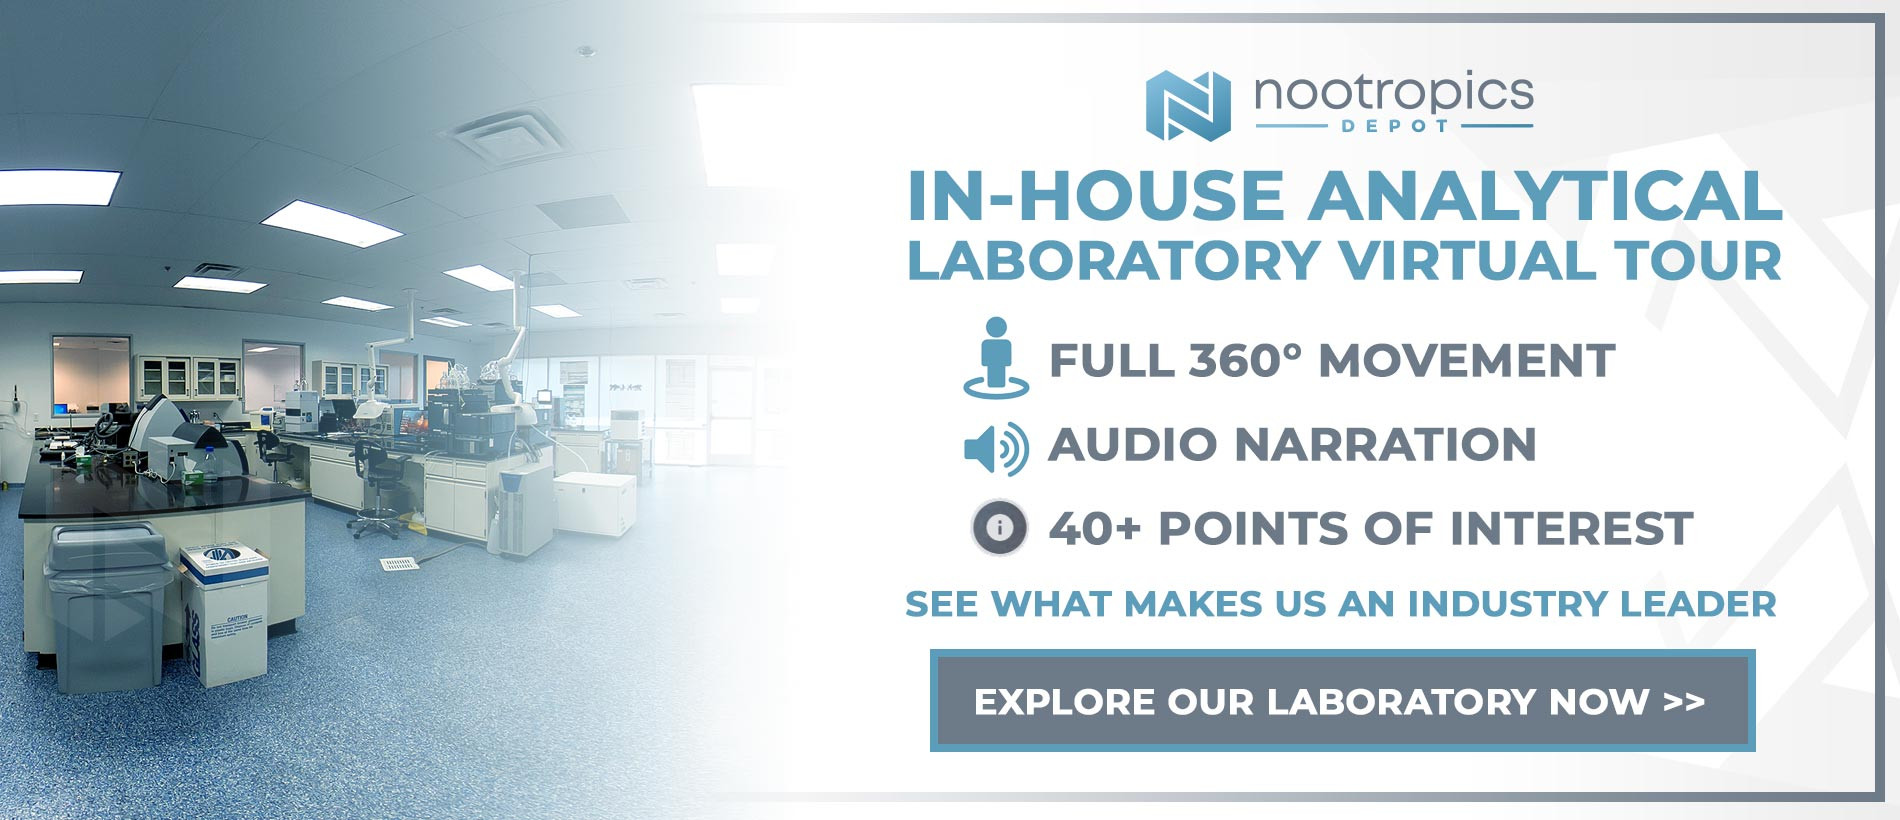 Nootropics Depot In-House Analytical Laboratory Virtual Tour